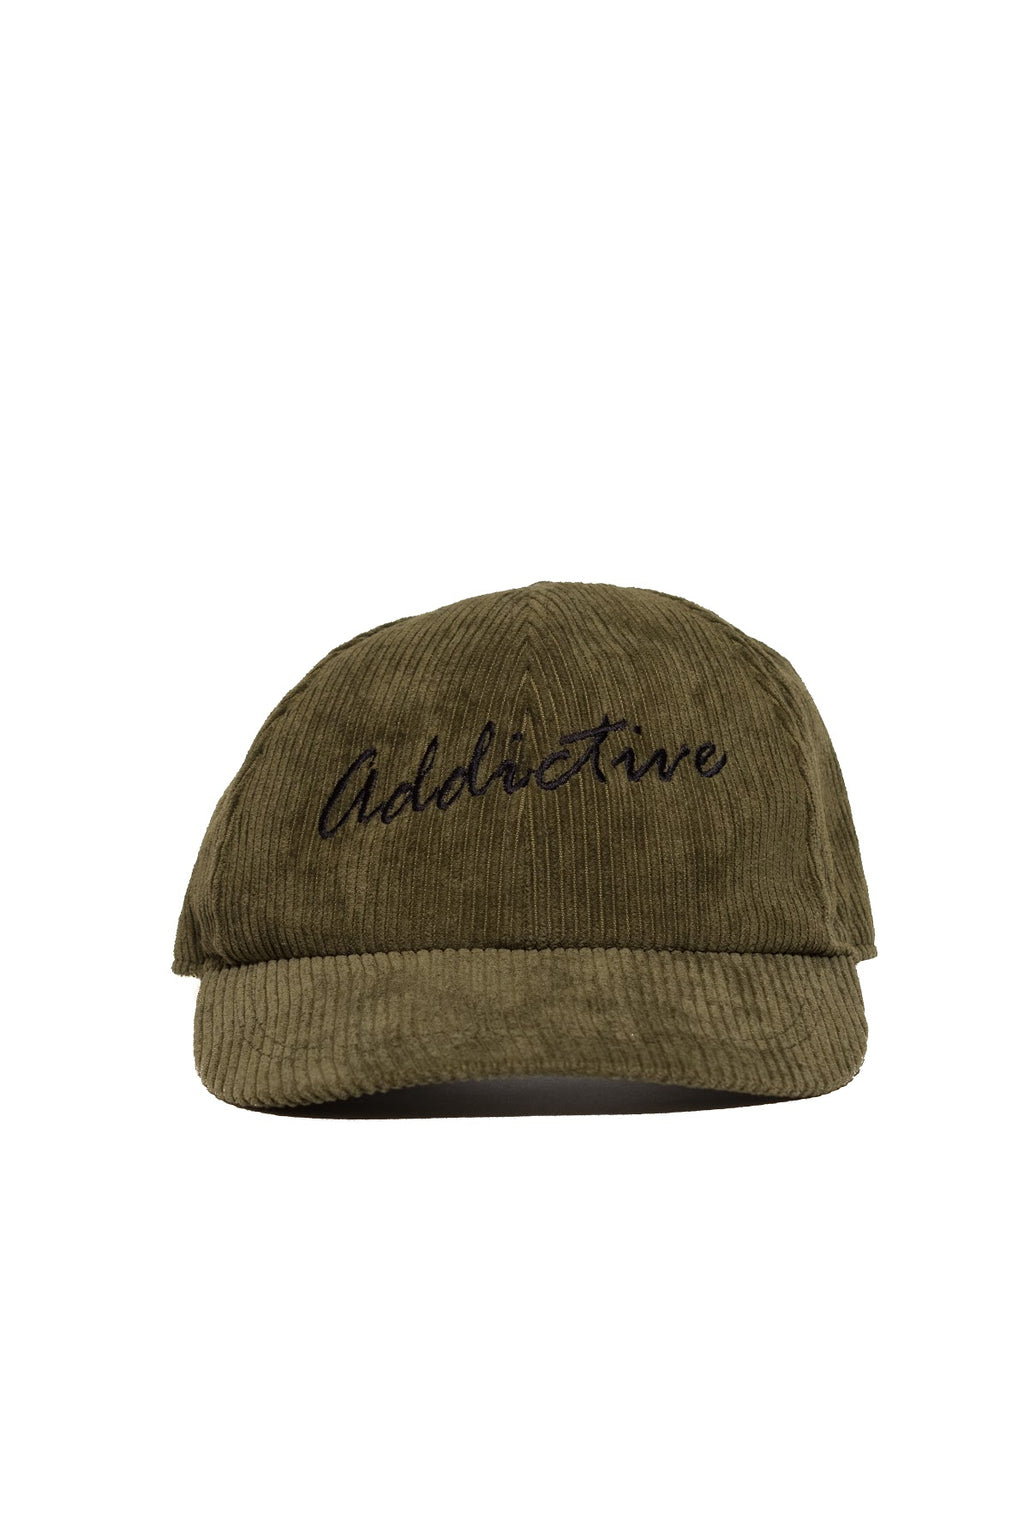 "Addictive ""Military Green"" Corduroy Cap"